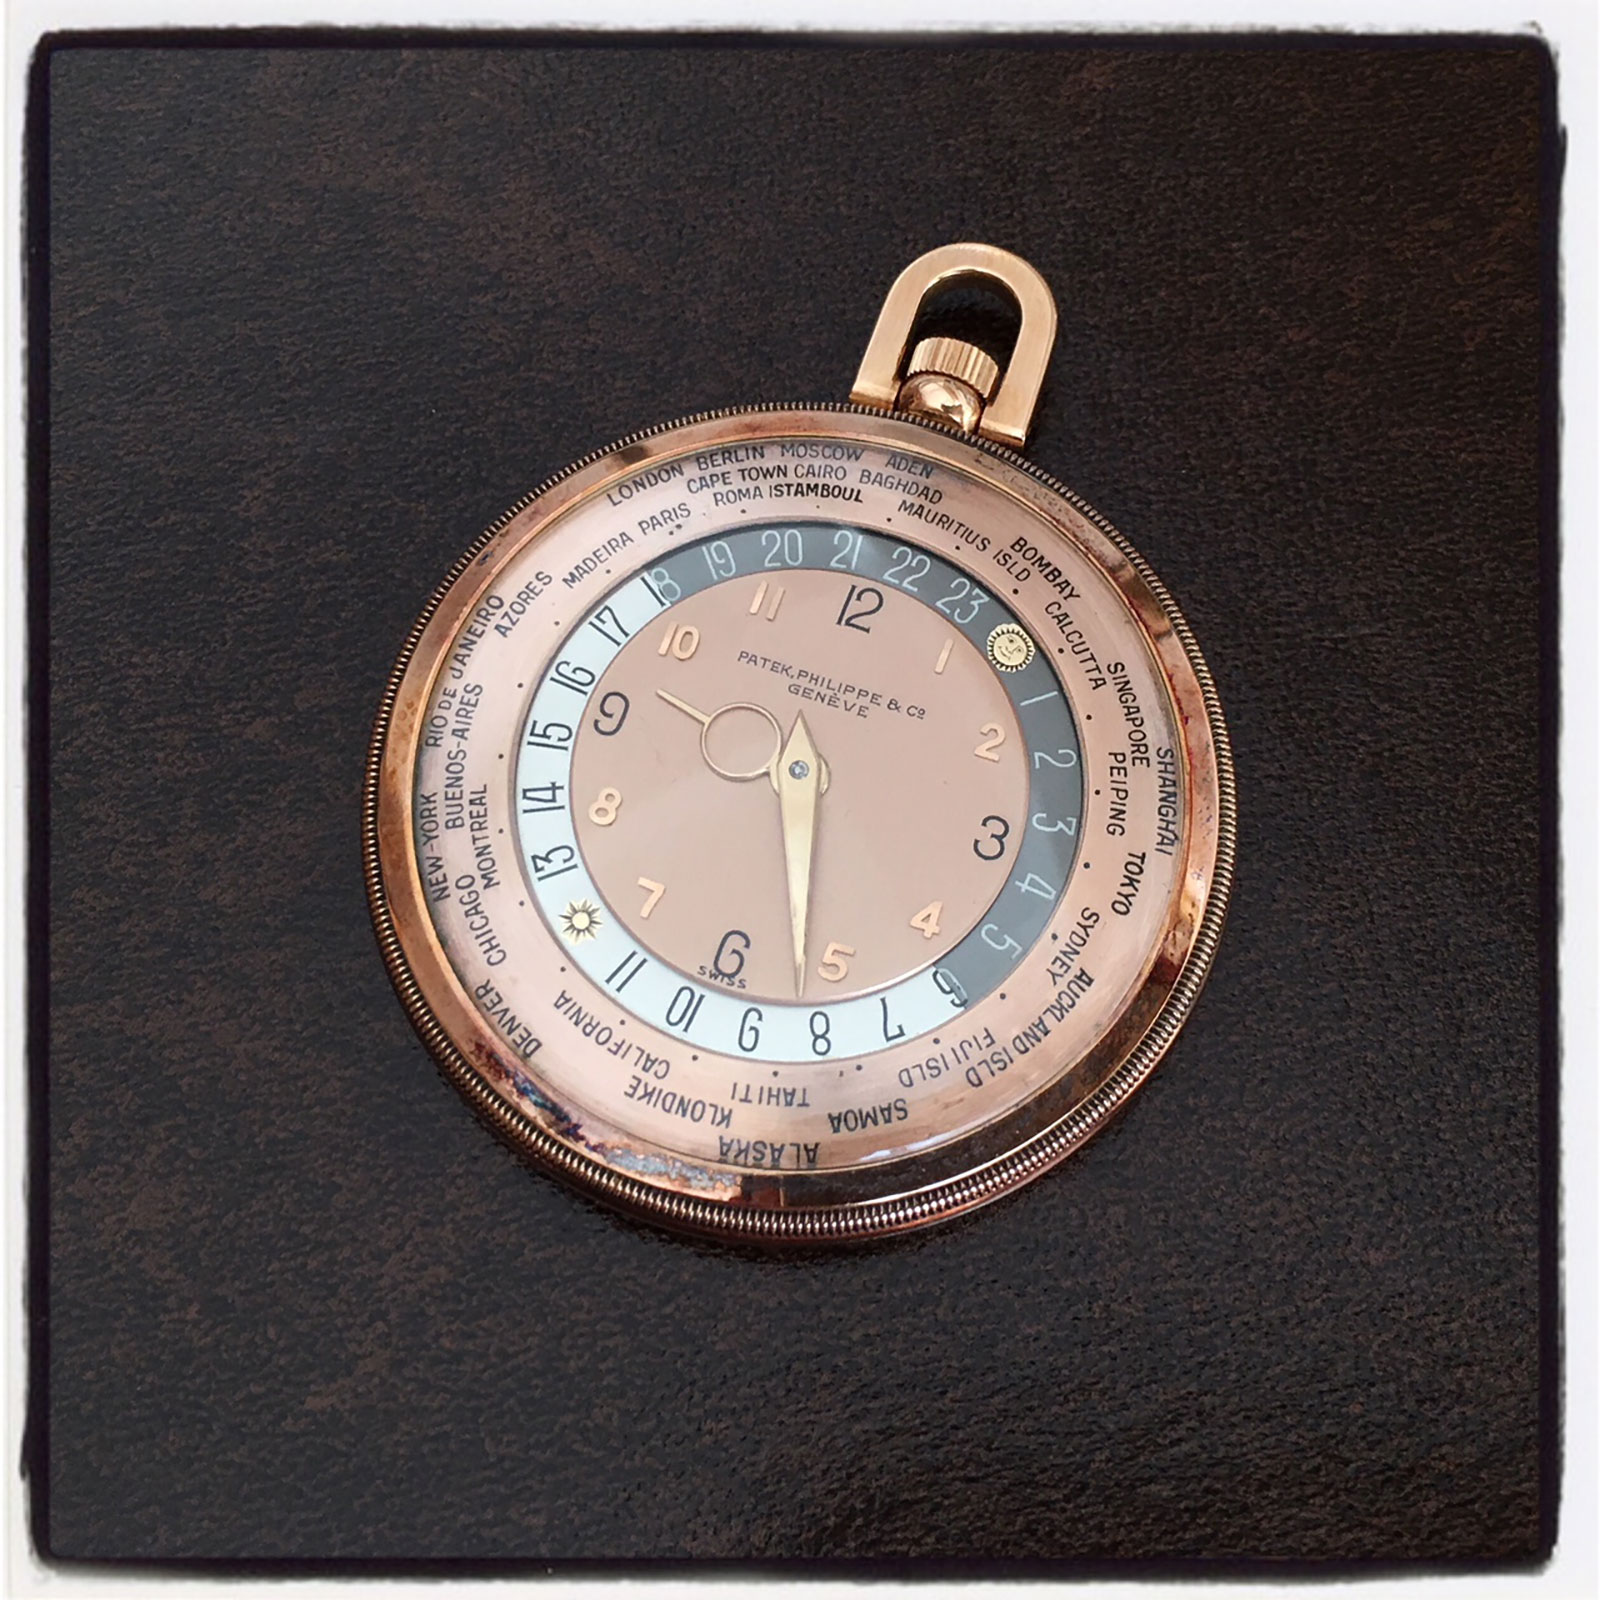 Patek Philippe world time pocket watch 605HU pink